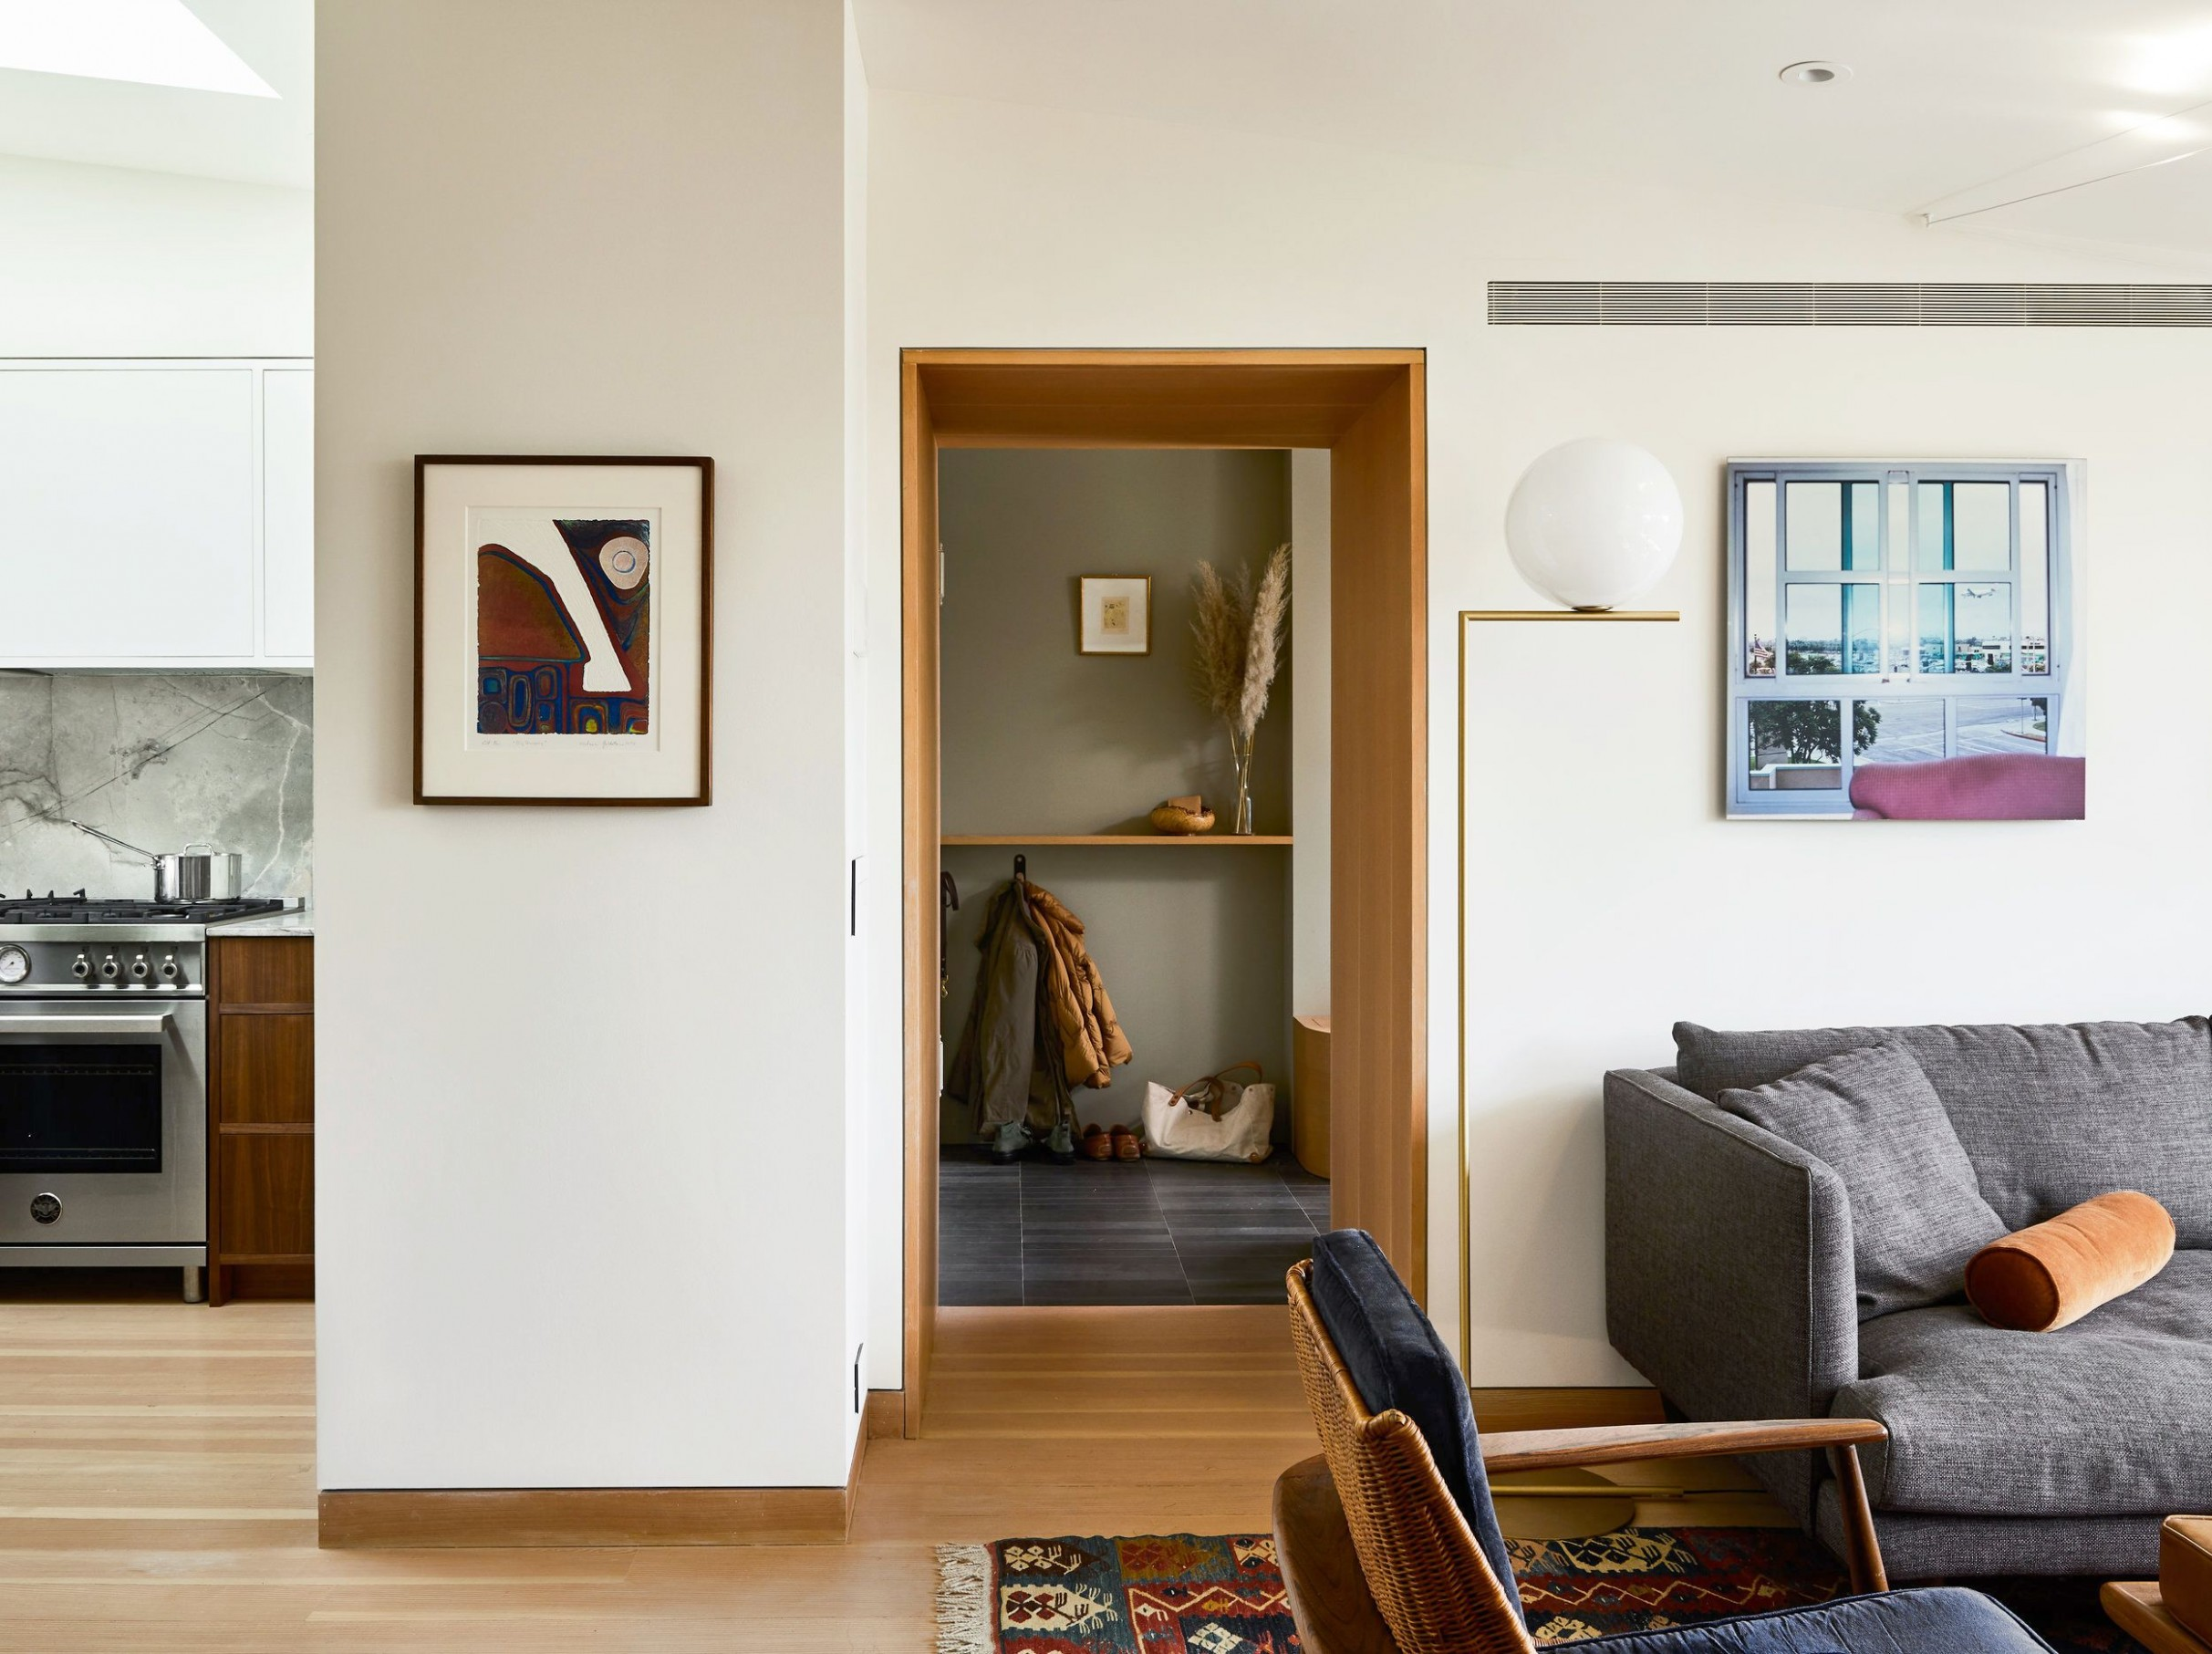 How to Decorate Your First Apartment - First Apartment Decorating  - Apartment Design Guide Uk